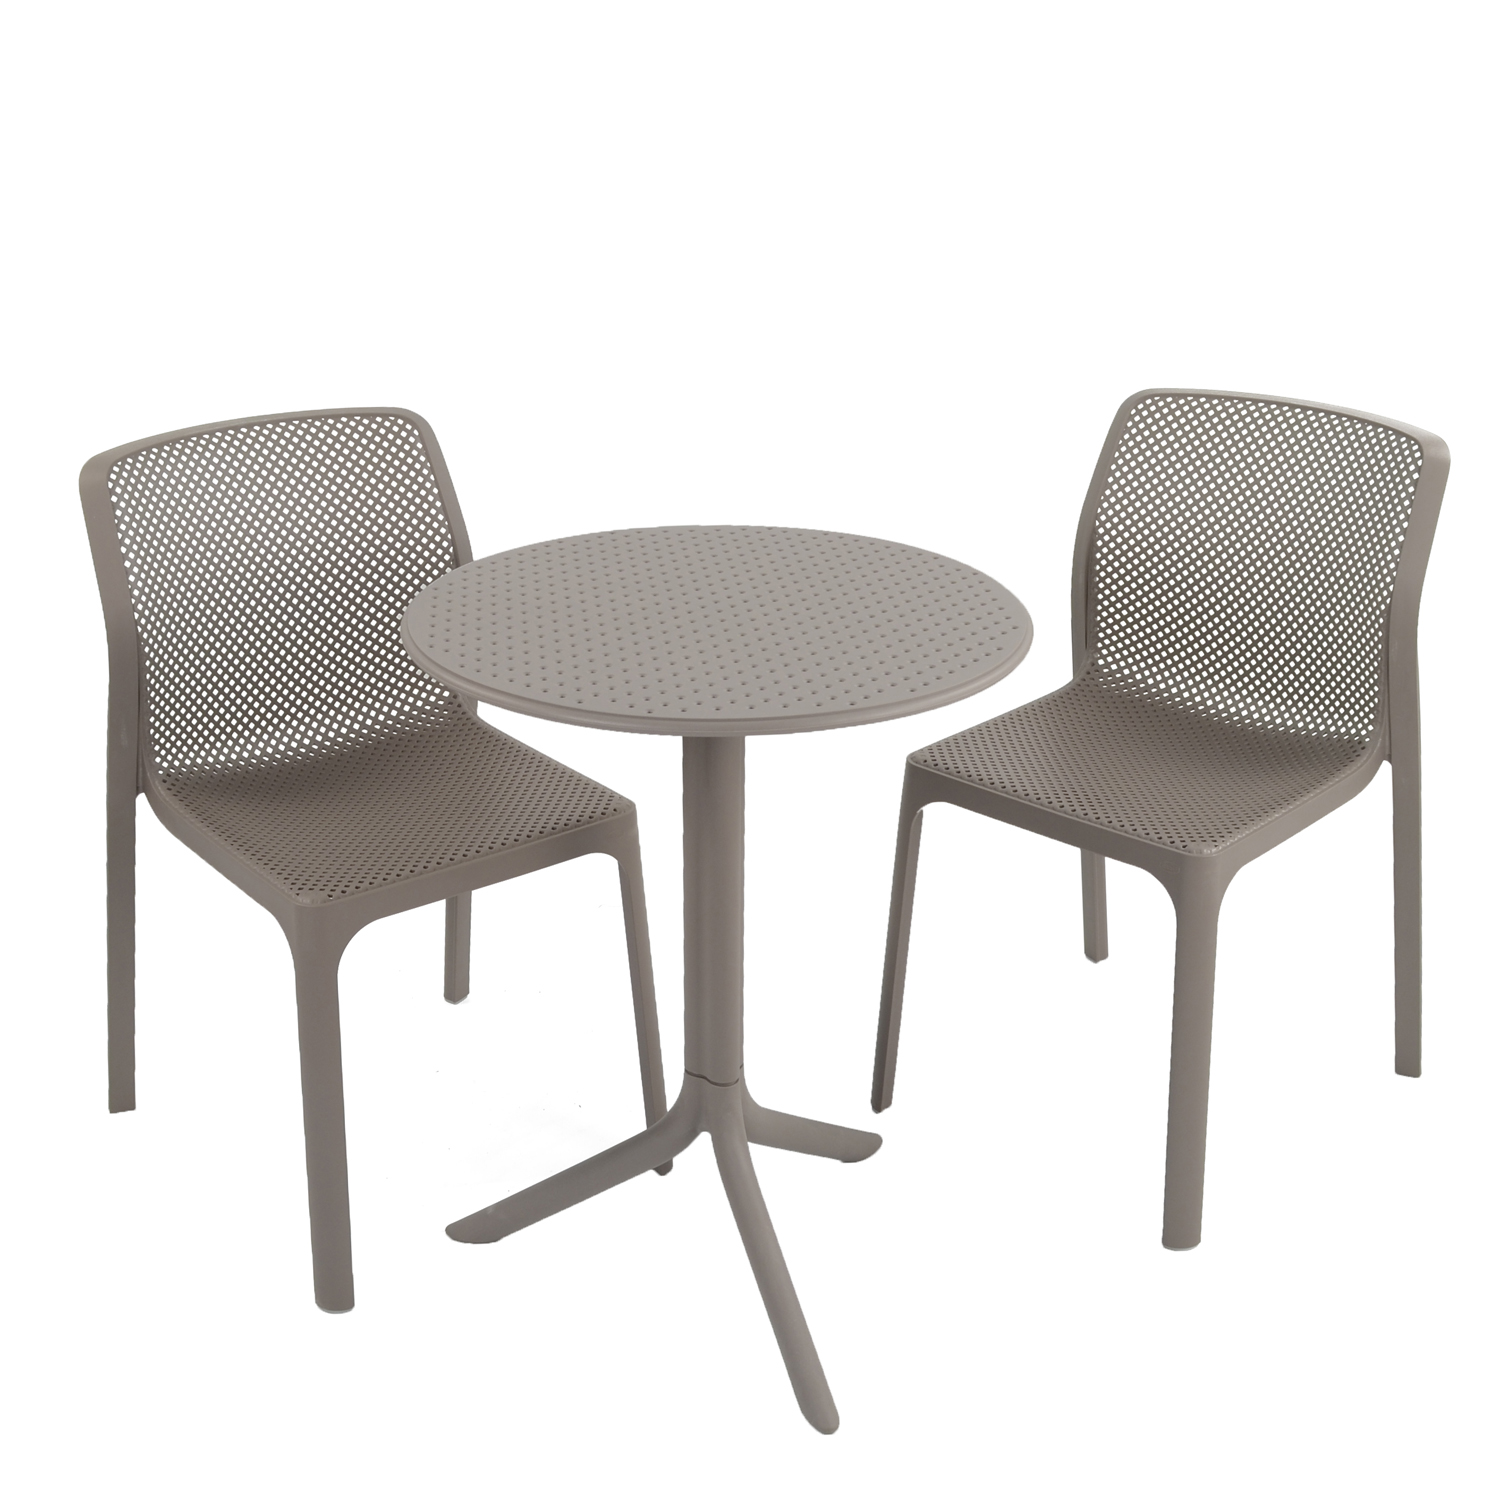 STEP TABLE WITH 2 BIT CHAIR SET TURTLE DOVE WG1